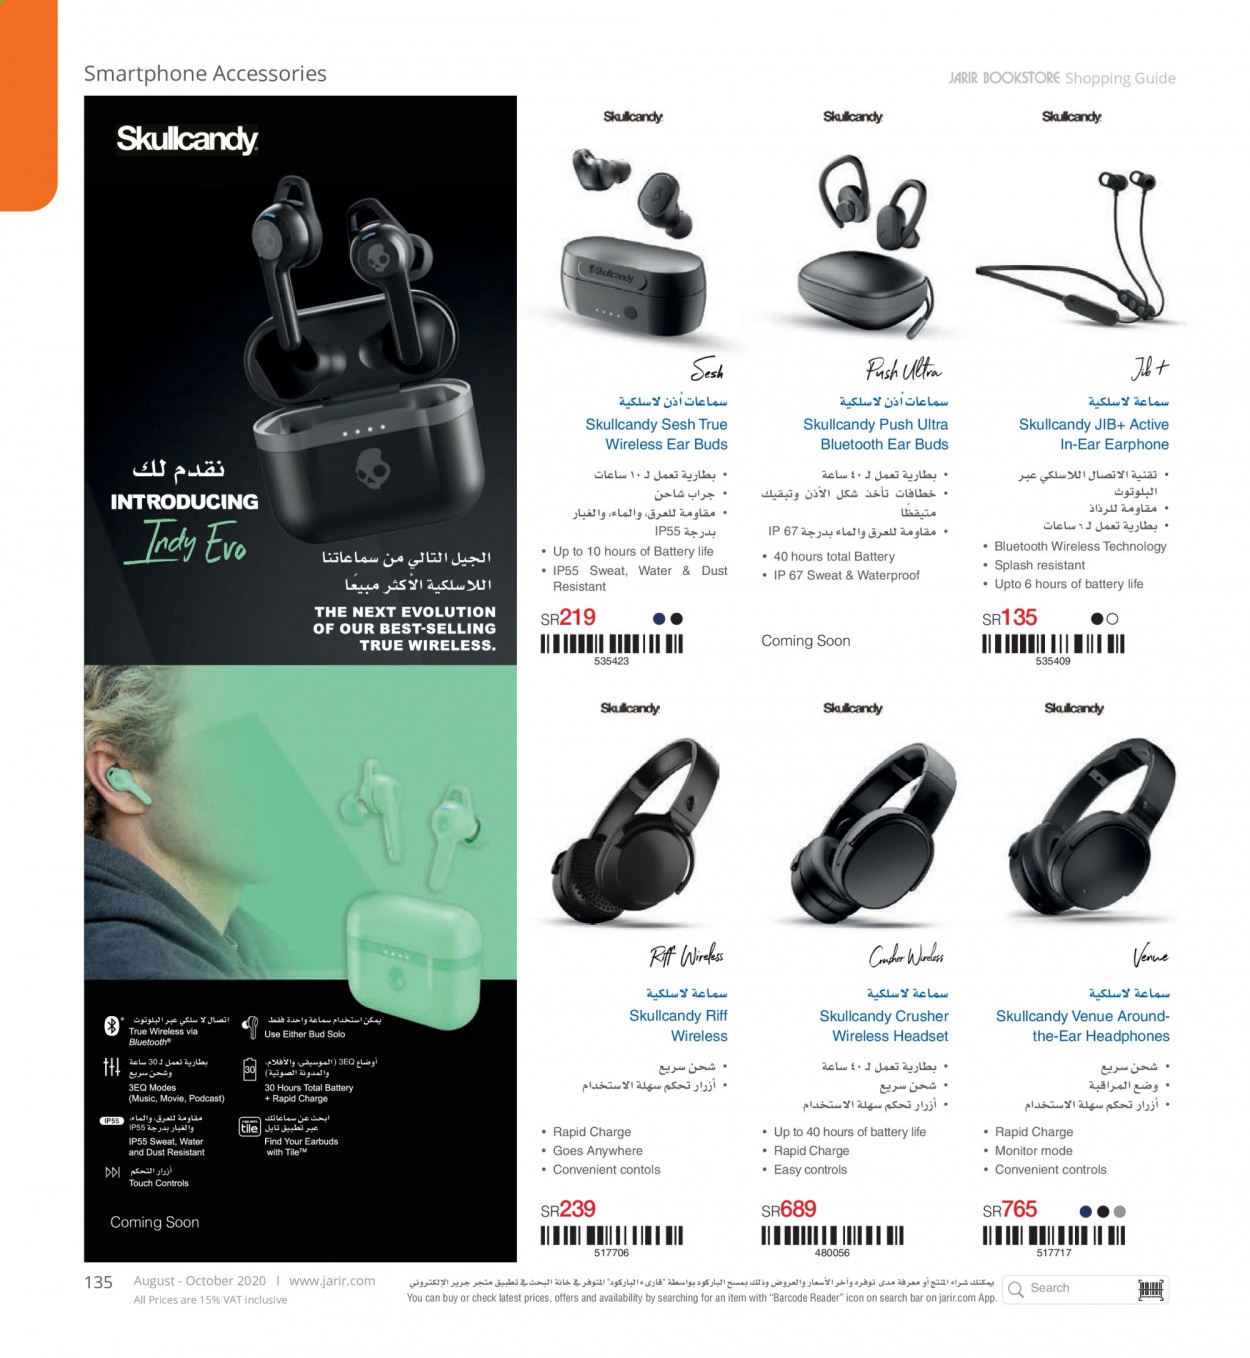 <retailer> - <MM.DD.YYYY - MM.DD.YYYY> - Sales products - ,<products from offers>. Page 135.